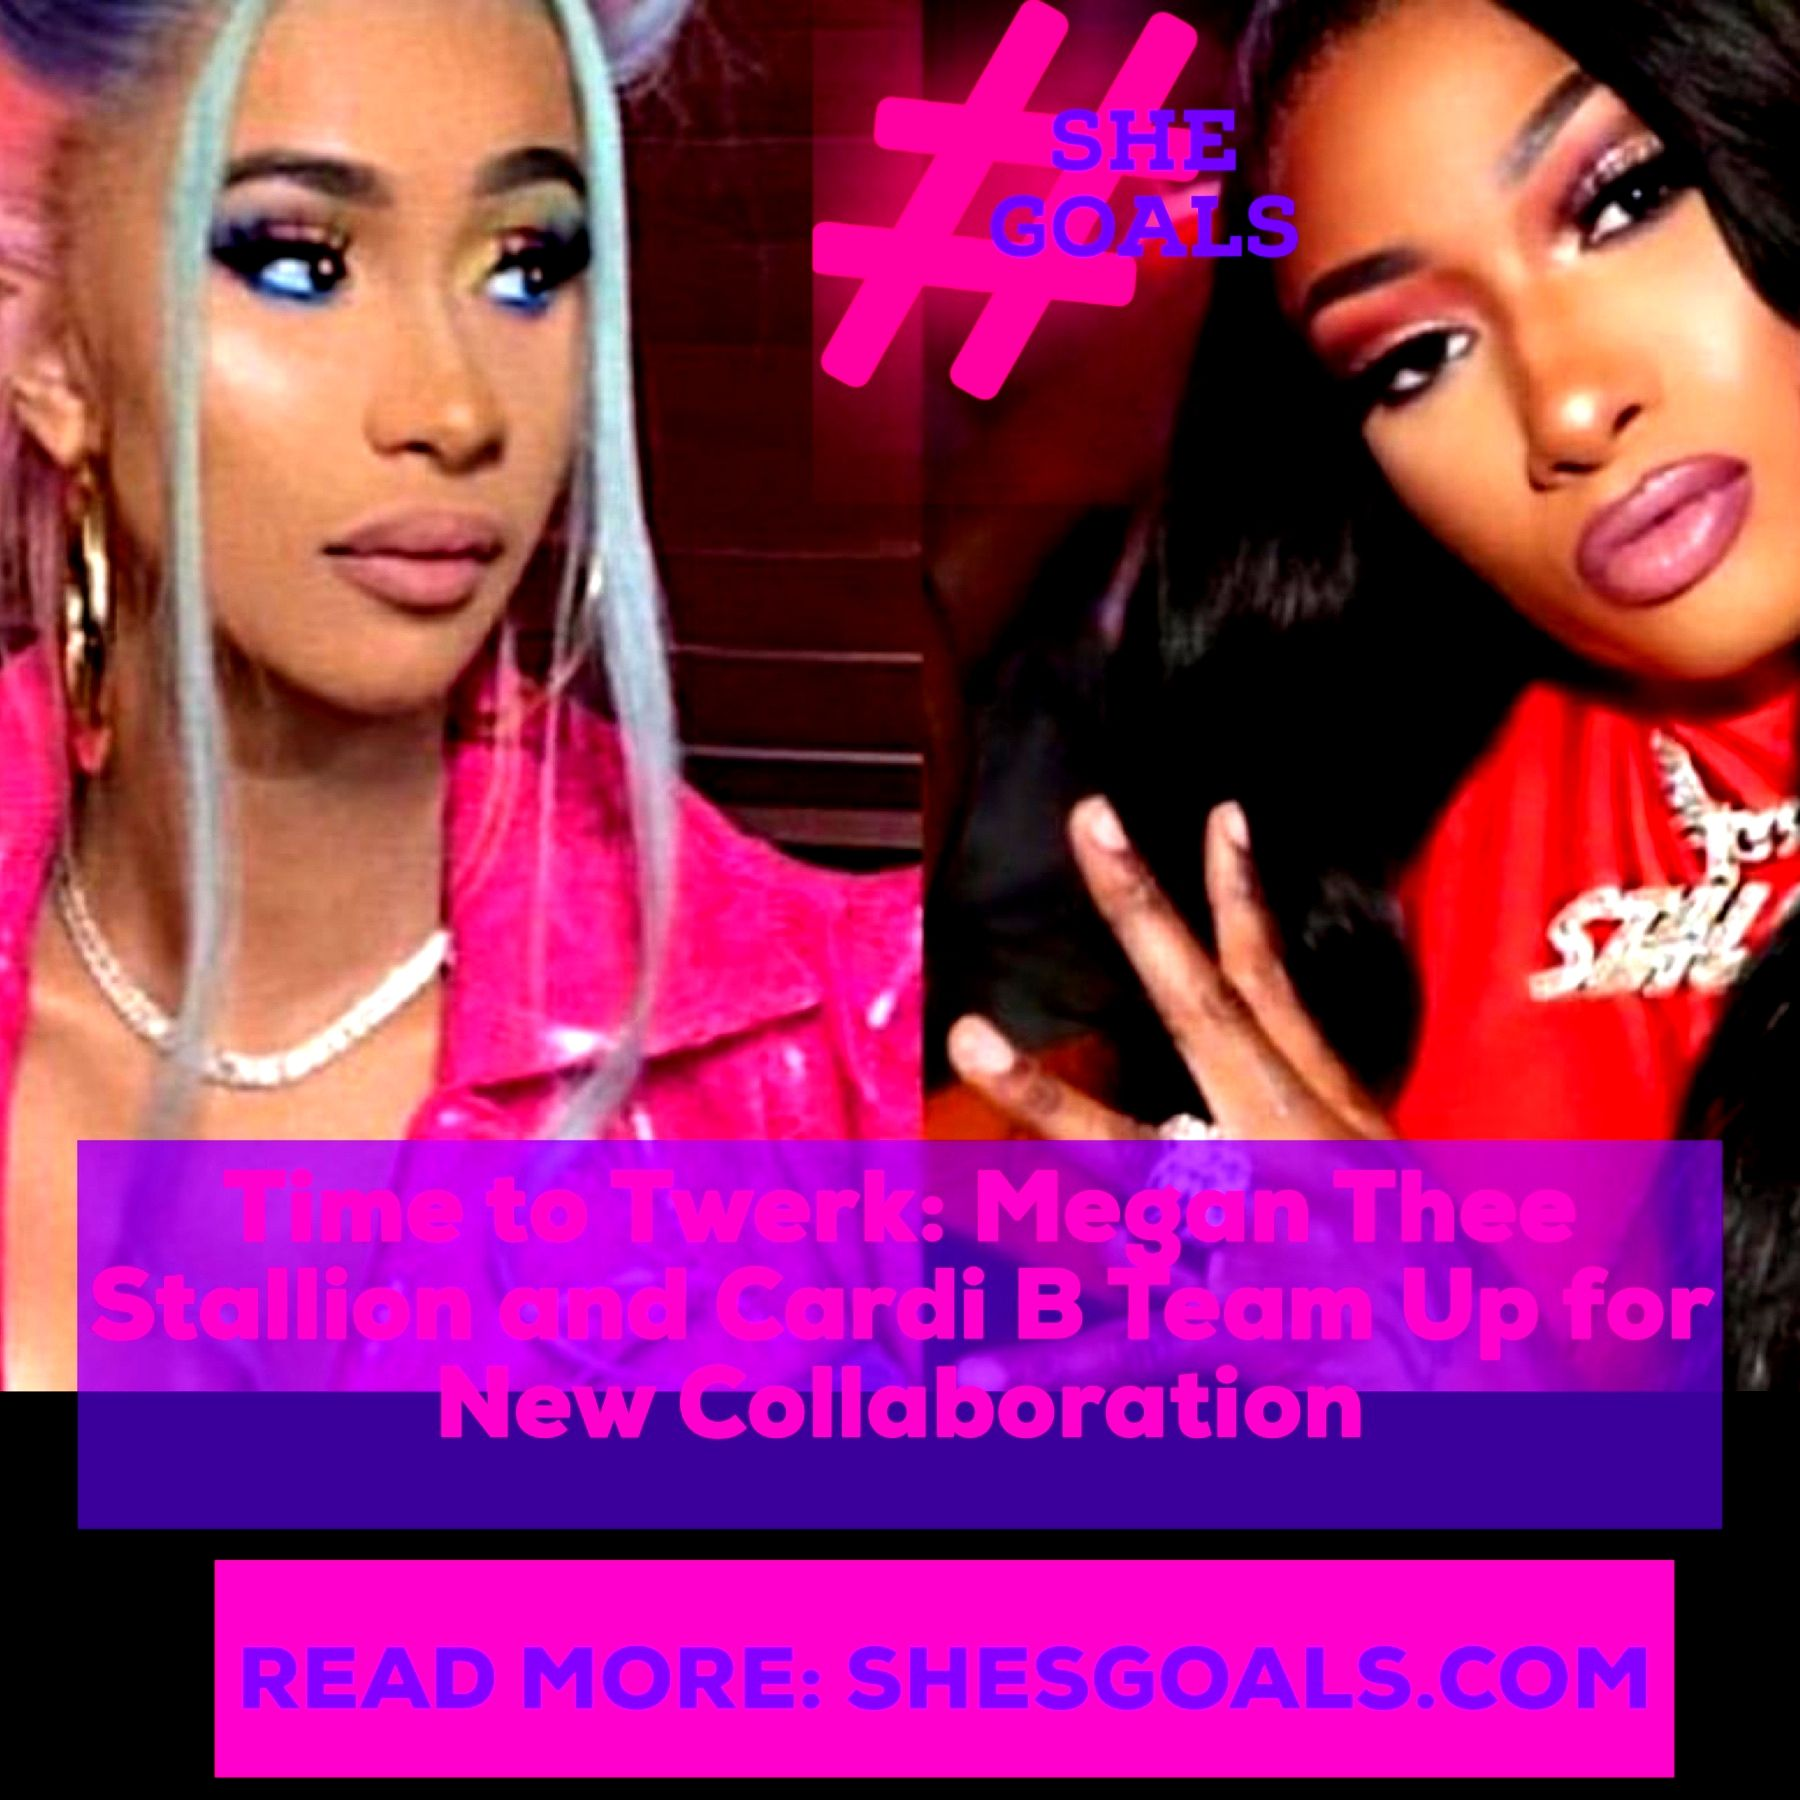 Time To Twerk Megan Thee Stallion And Cardi B Team Up For New Collaboration In 2020 Cardi B Twerk Collaboration